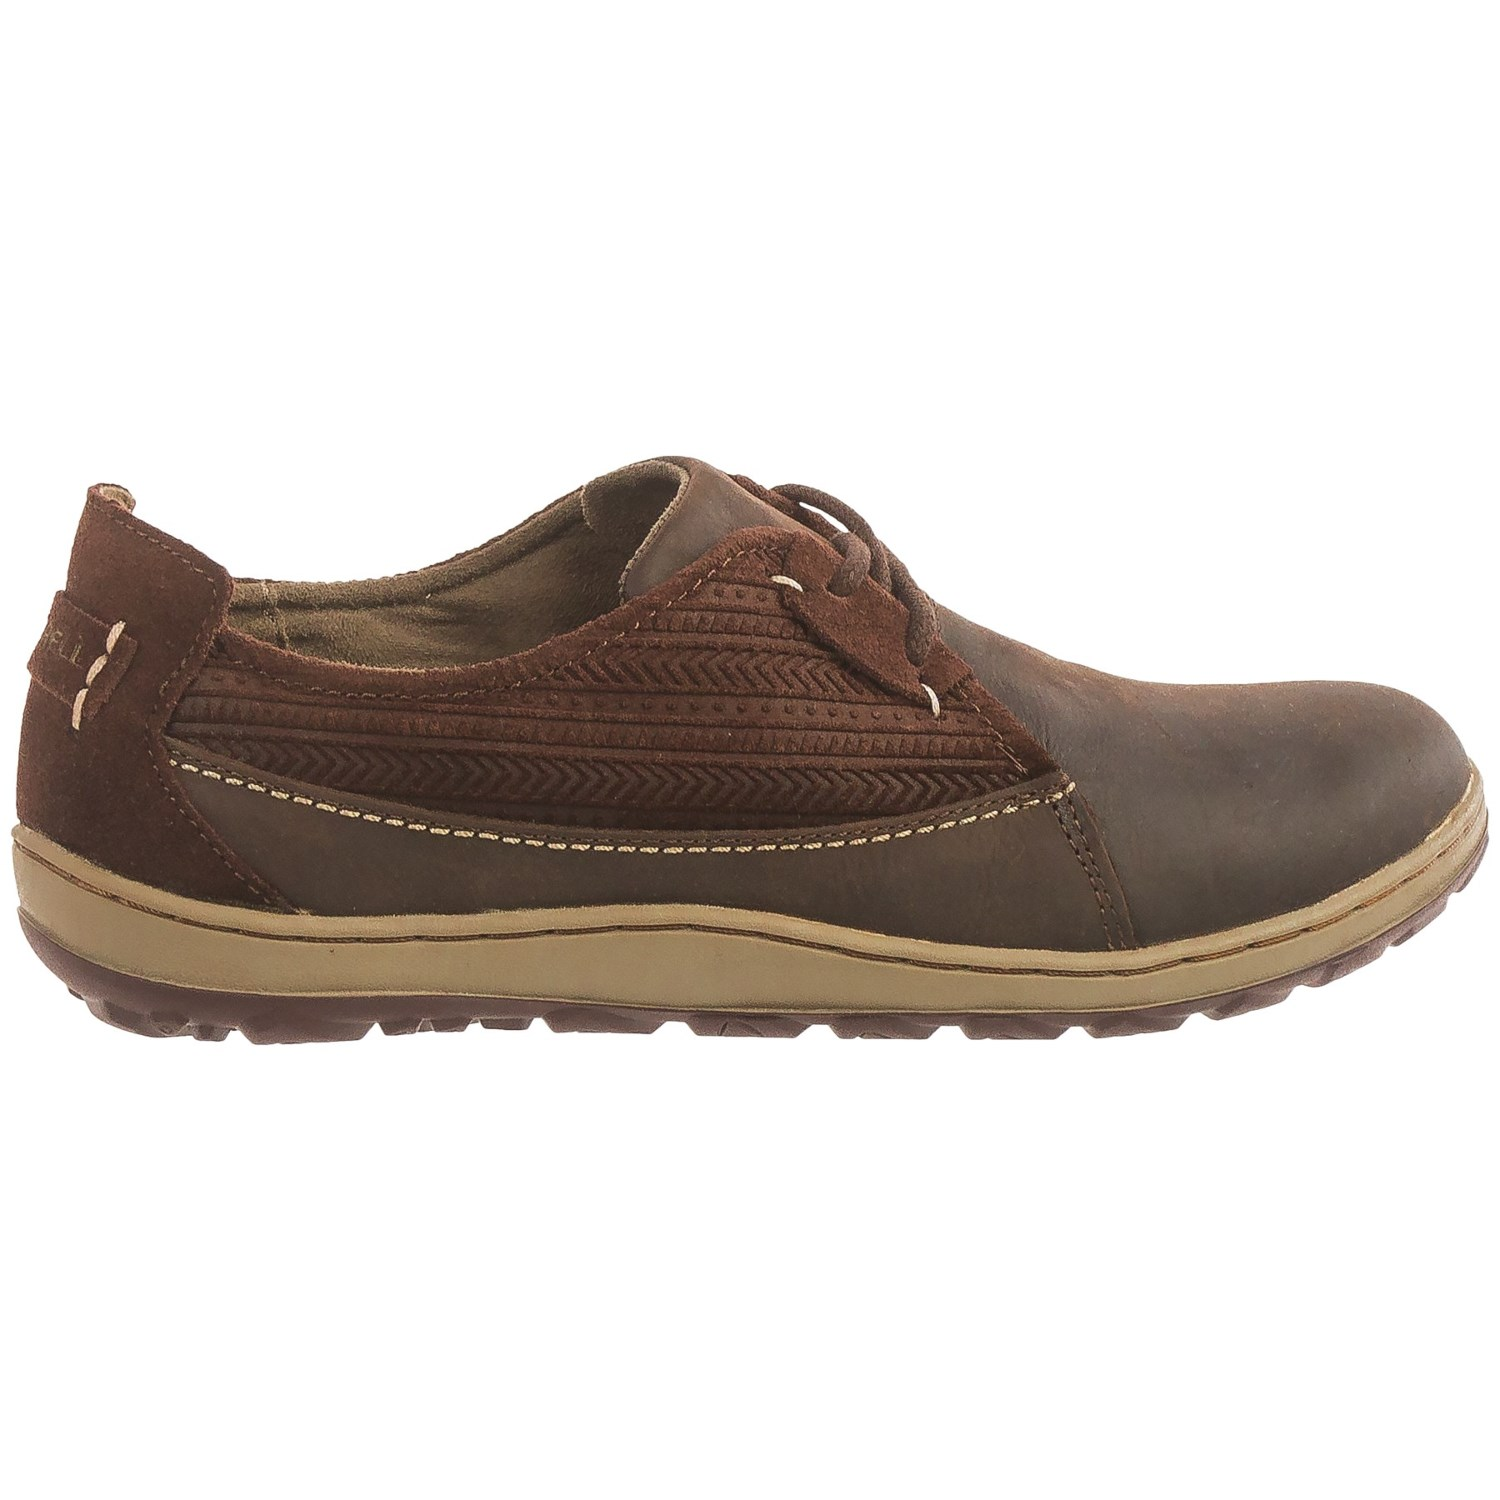 Merrell Ashland Lace Shoes Leather For Women